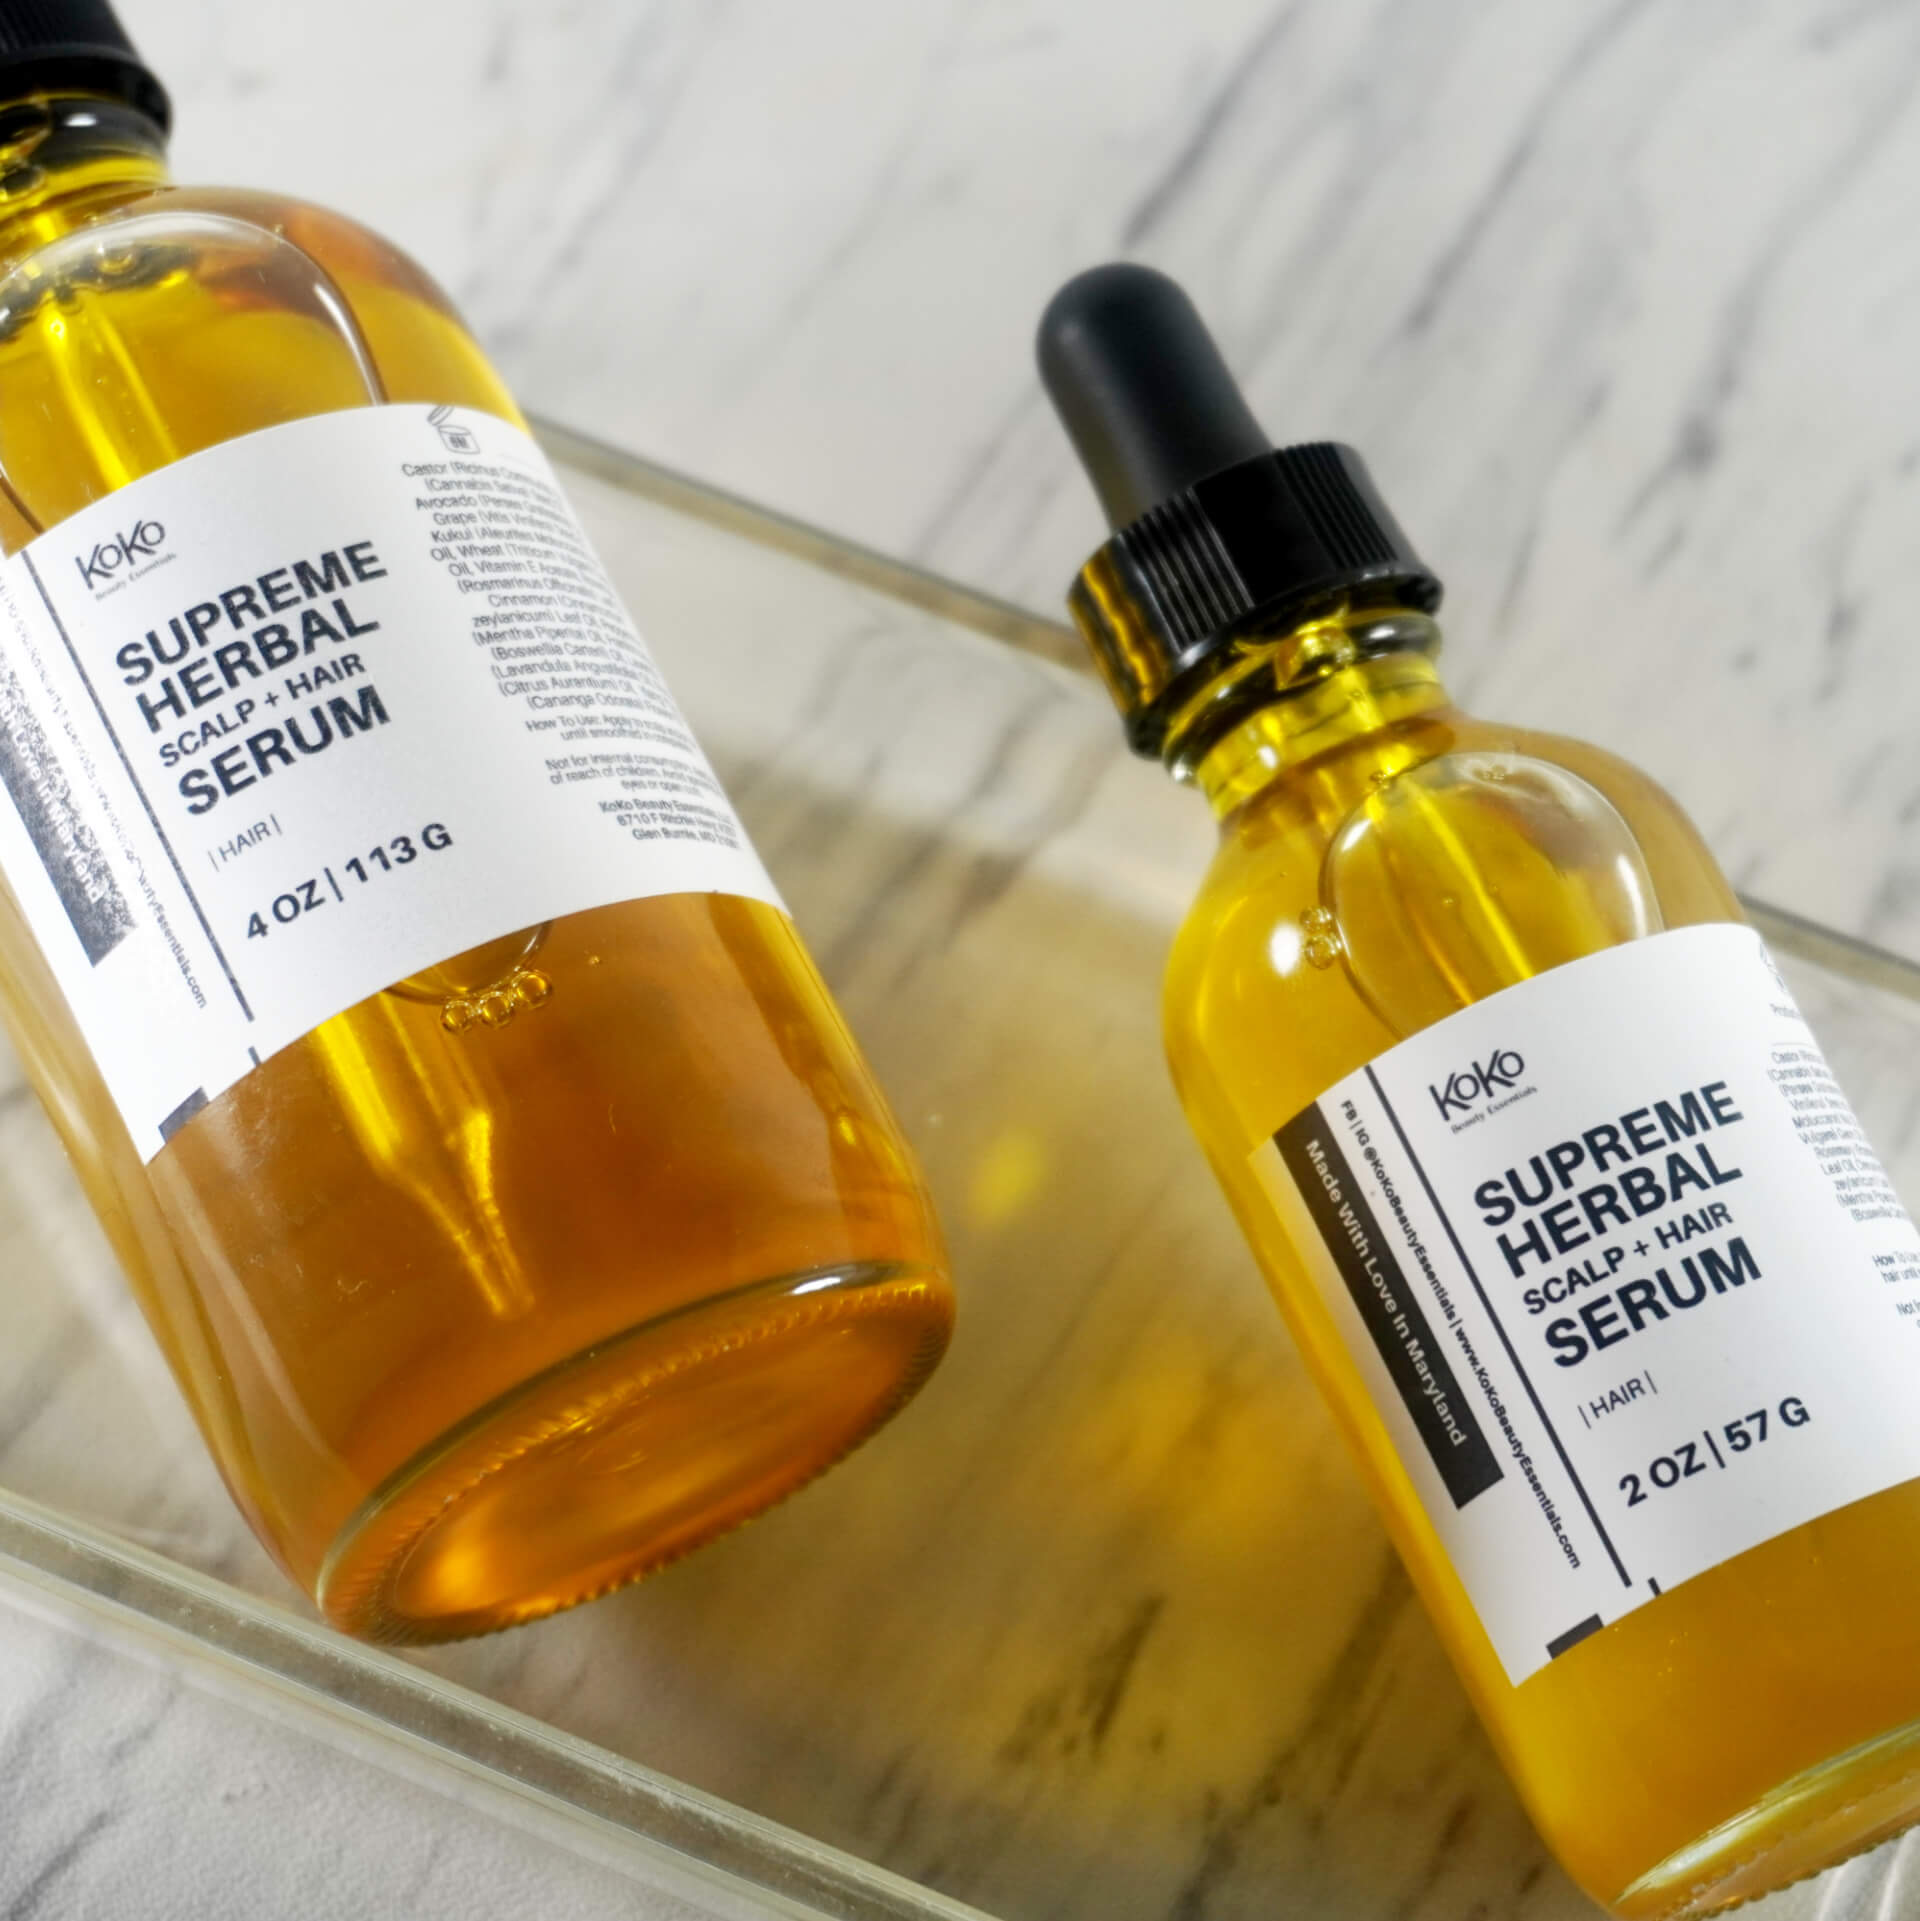 Supreme Herbal Scalp Serum